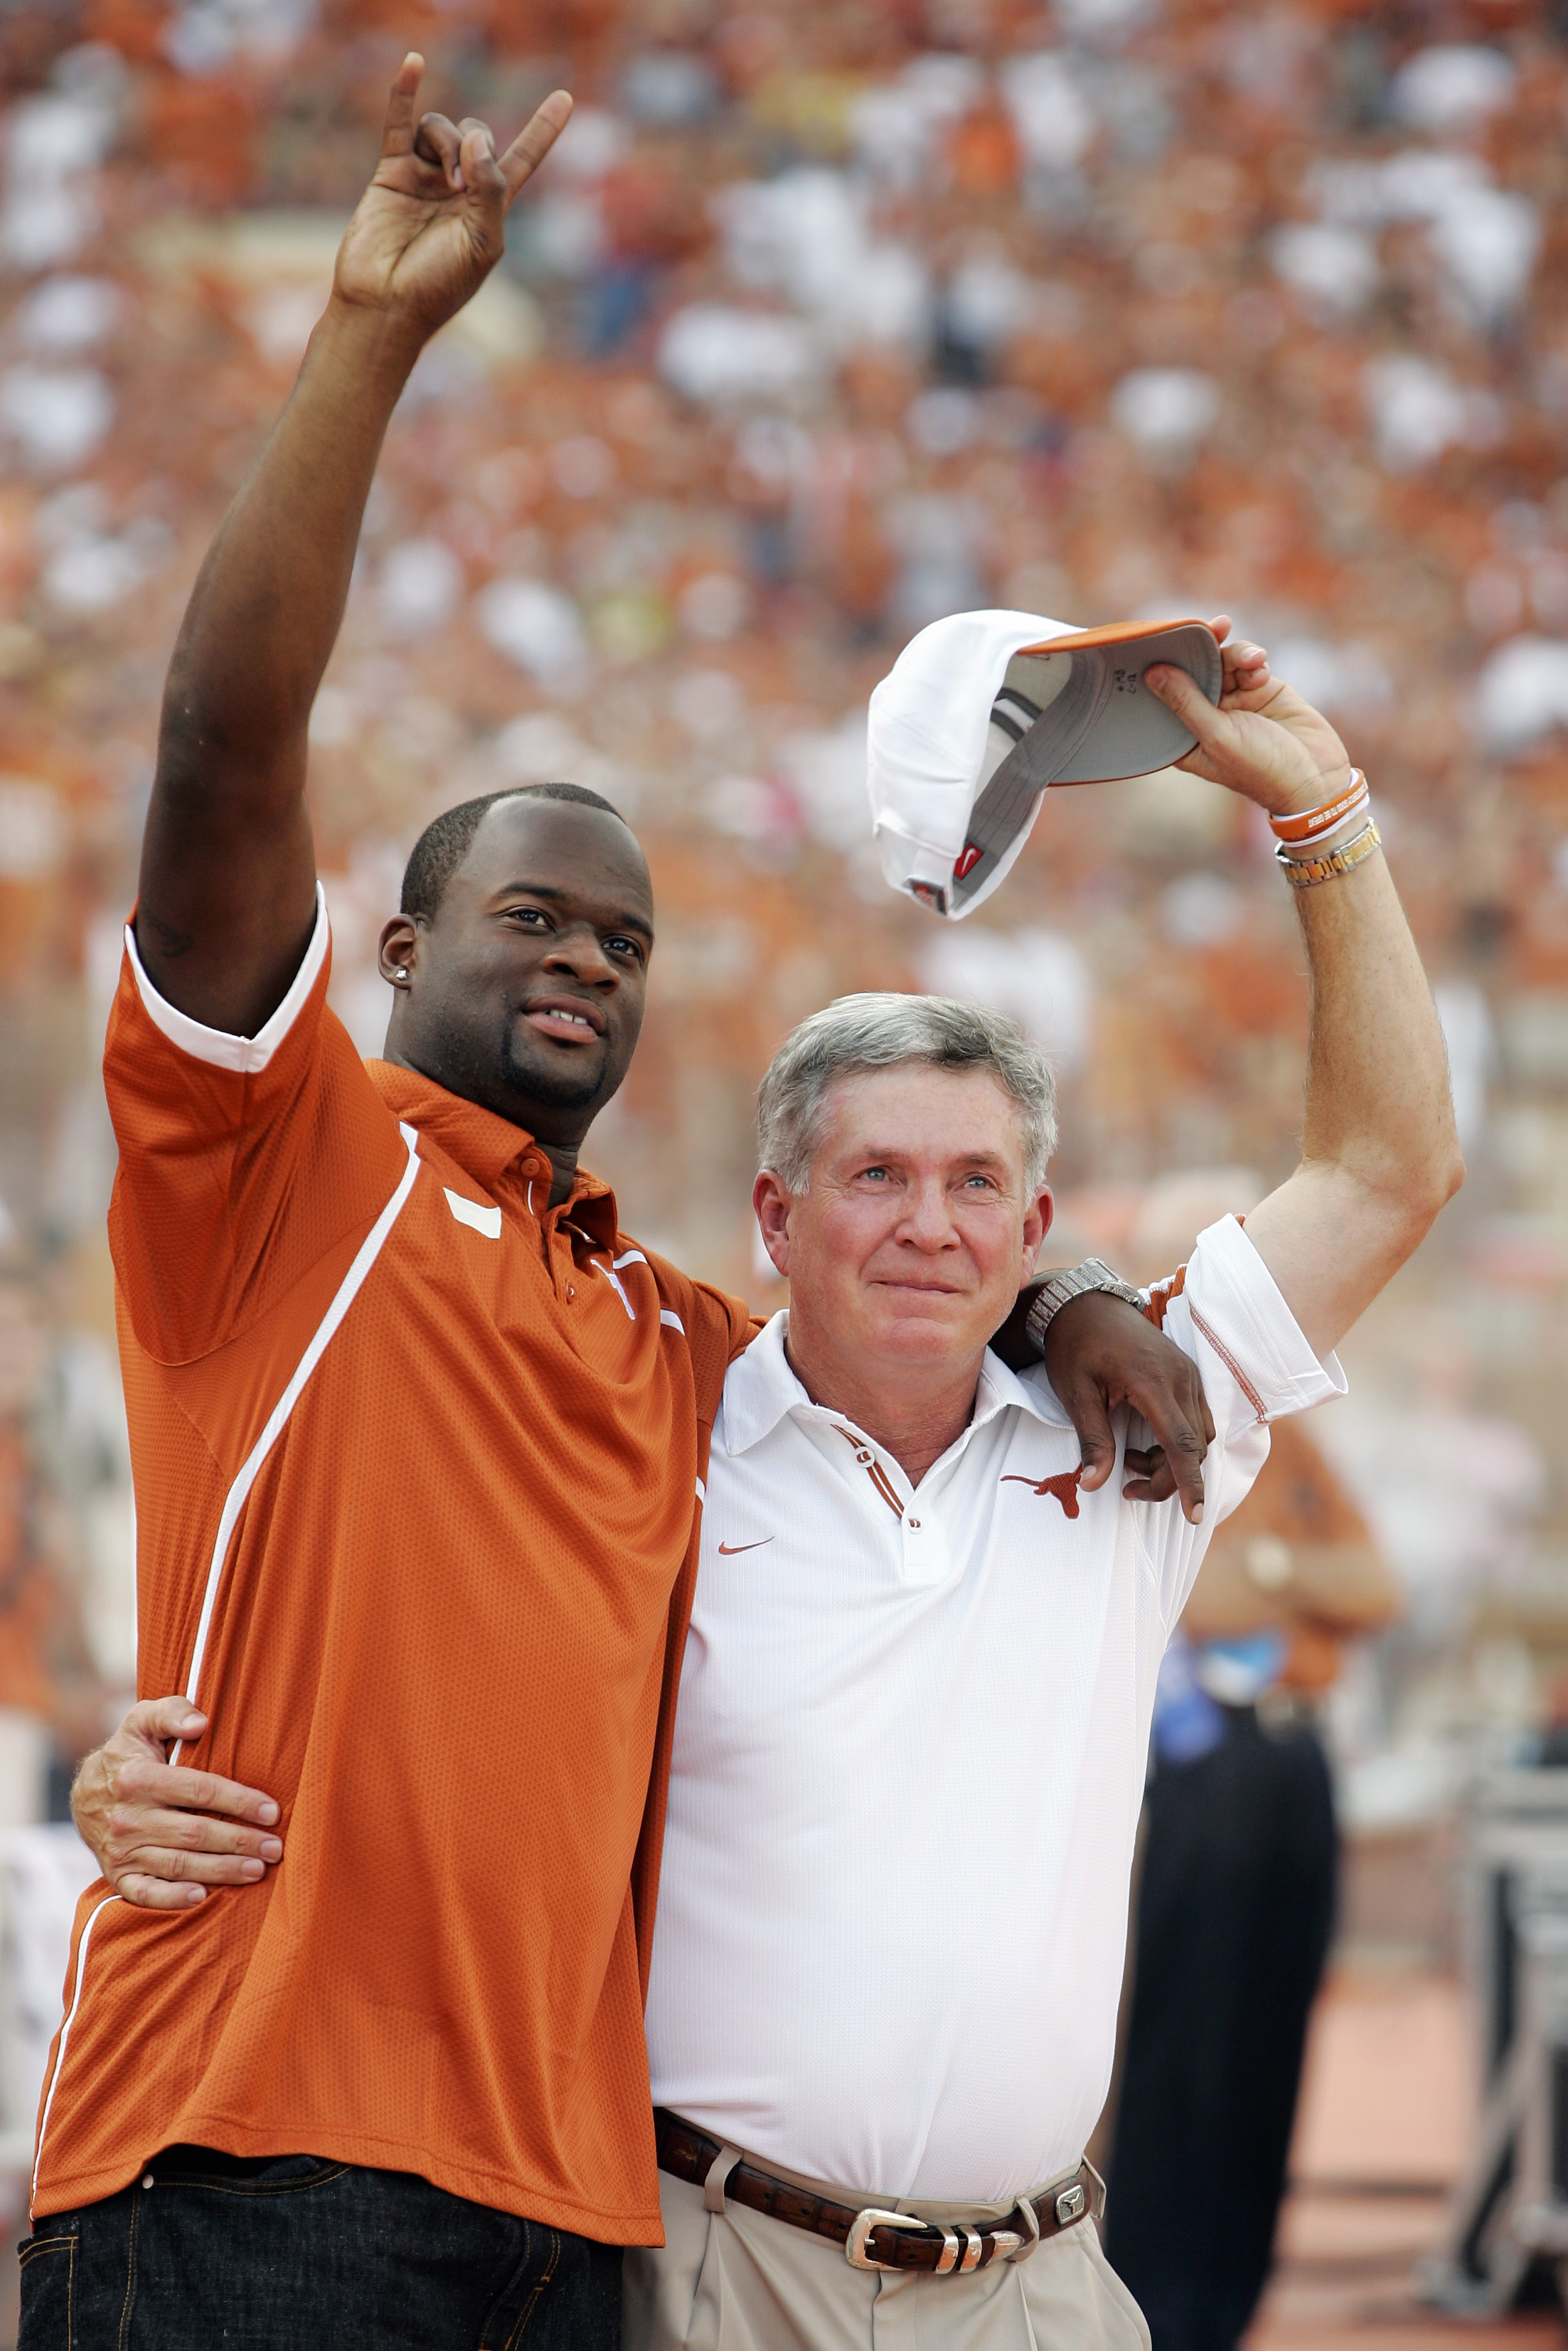 AUSTIN, TX - AUGUST 30:  Quarterback Vince Young of the Tennessee Titans and formerly with the Texas Longhorns hugs coach Mack Brown as his number is retired before a game against the Florida Atlantic Owls at Darrell K Royal-Texas Memorial Stadium on Augu